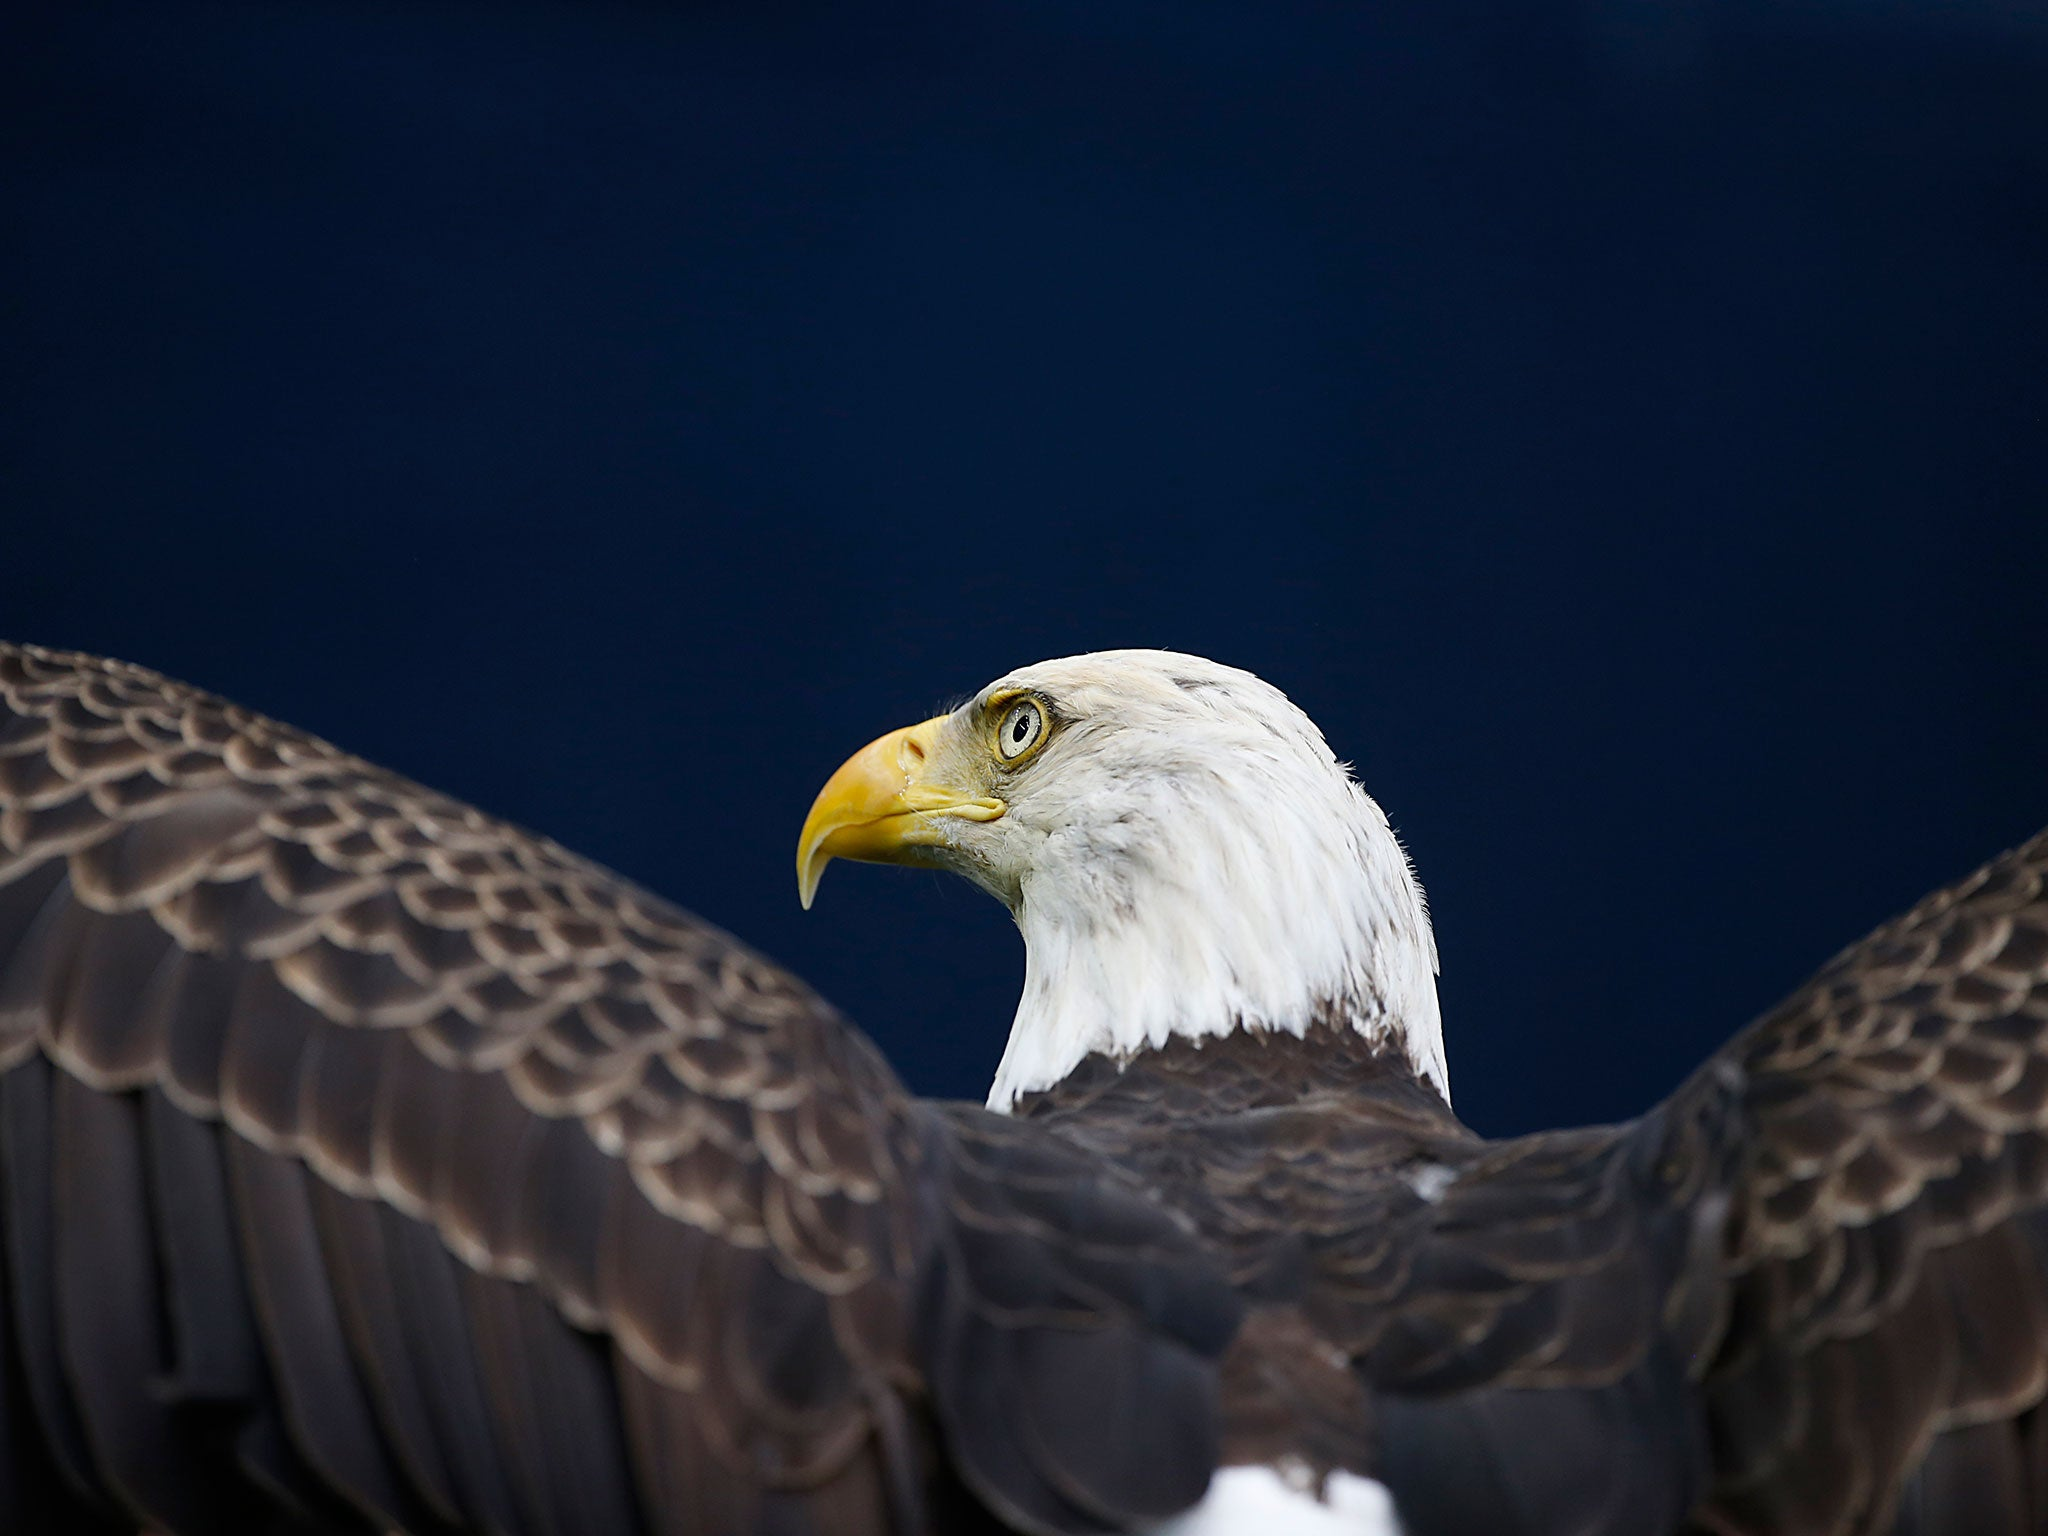 an introduction to the bald eagle in america Essays research papers - the american bald eagle american symbolism and mythology essay - in america we have created our own types of myths and our founding fathers have left us meaning in our nations symbols.